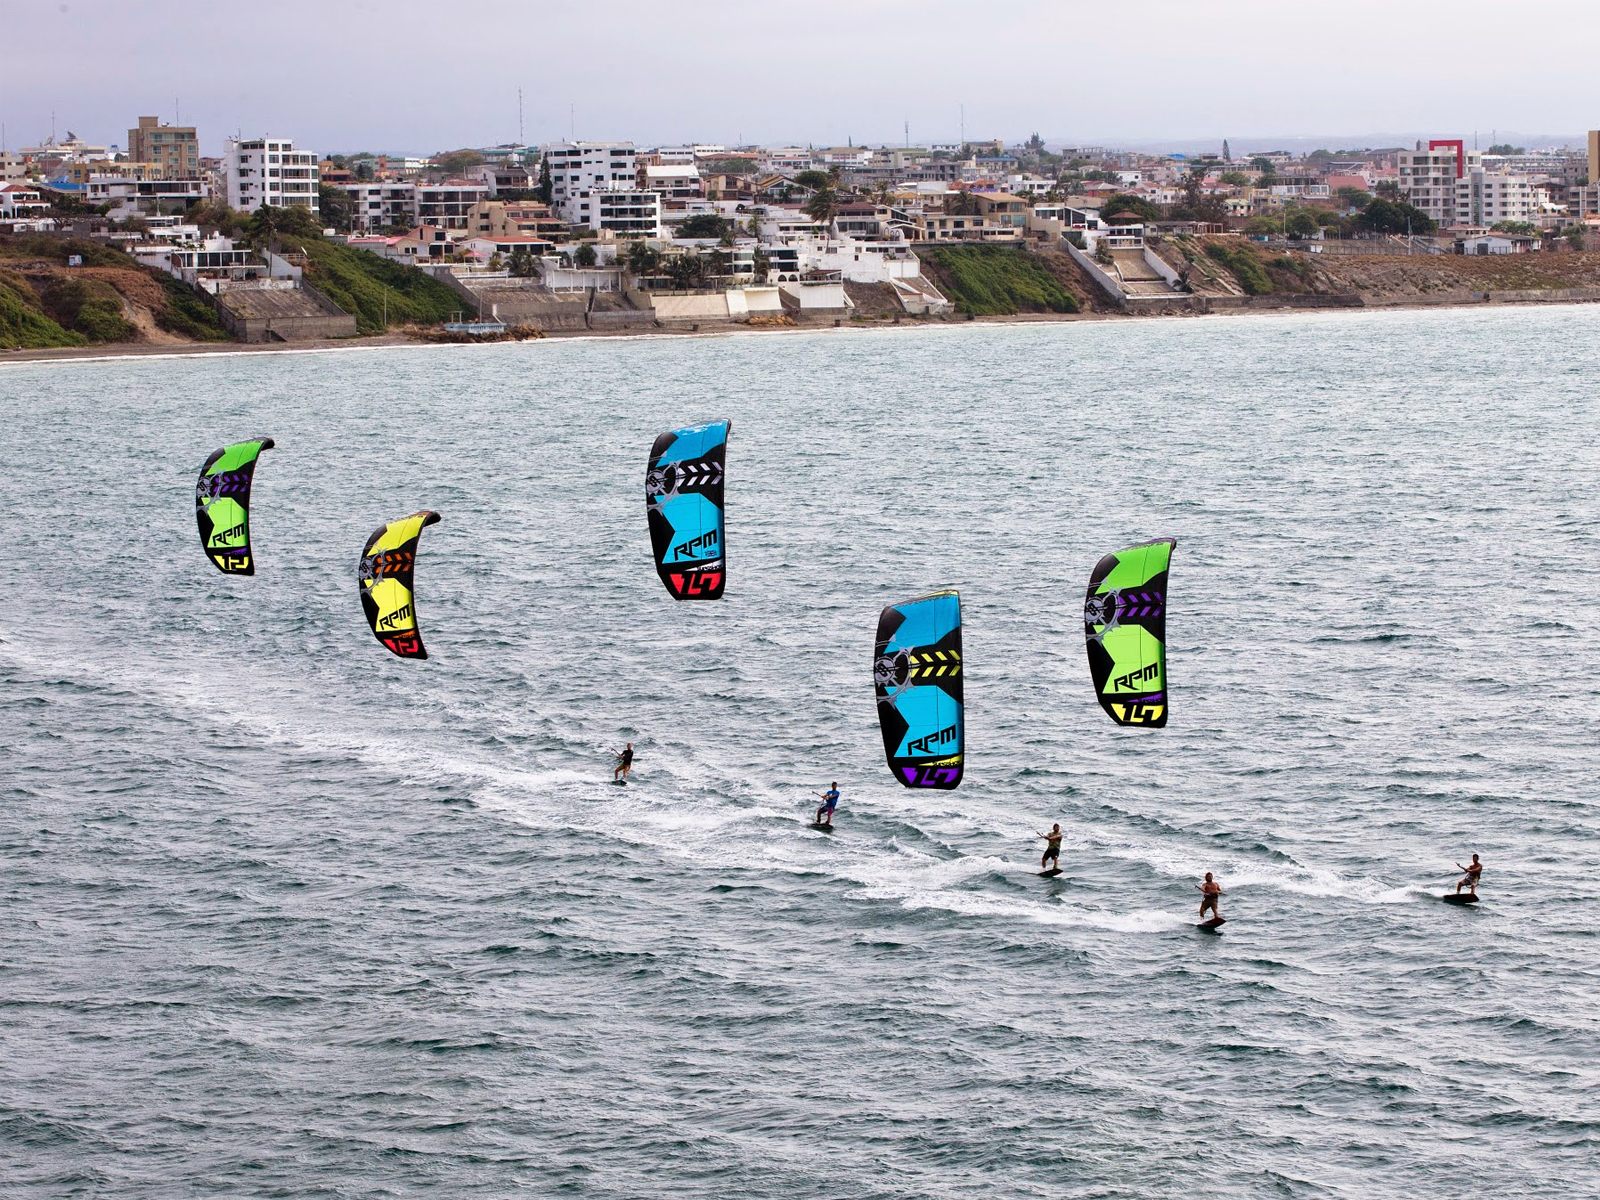 kitesurf wallpaper image - Slingshot RPM riders taking control of the bay - in resolution: Standard 4:3 1600 X 1200